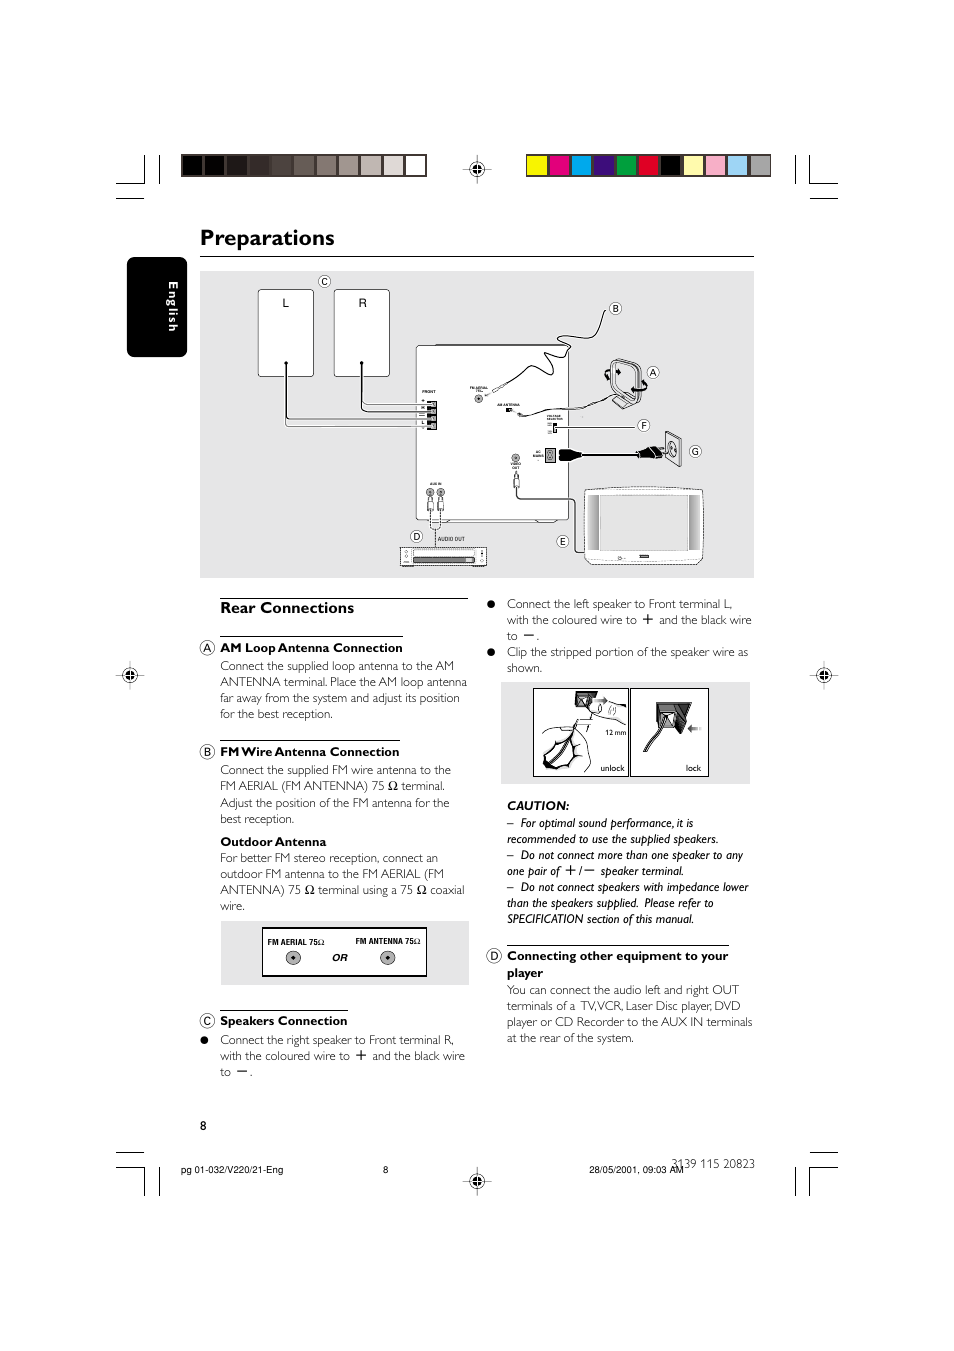 Philips 21 Tv Diagram Trusted Wiring Index 238 Control Circuit Seekiccom Preparations Rear Connections A Fw V220 User Manual Vizio